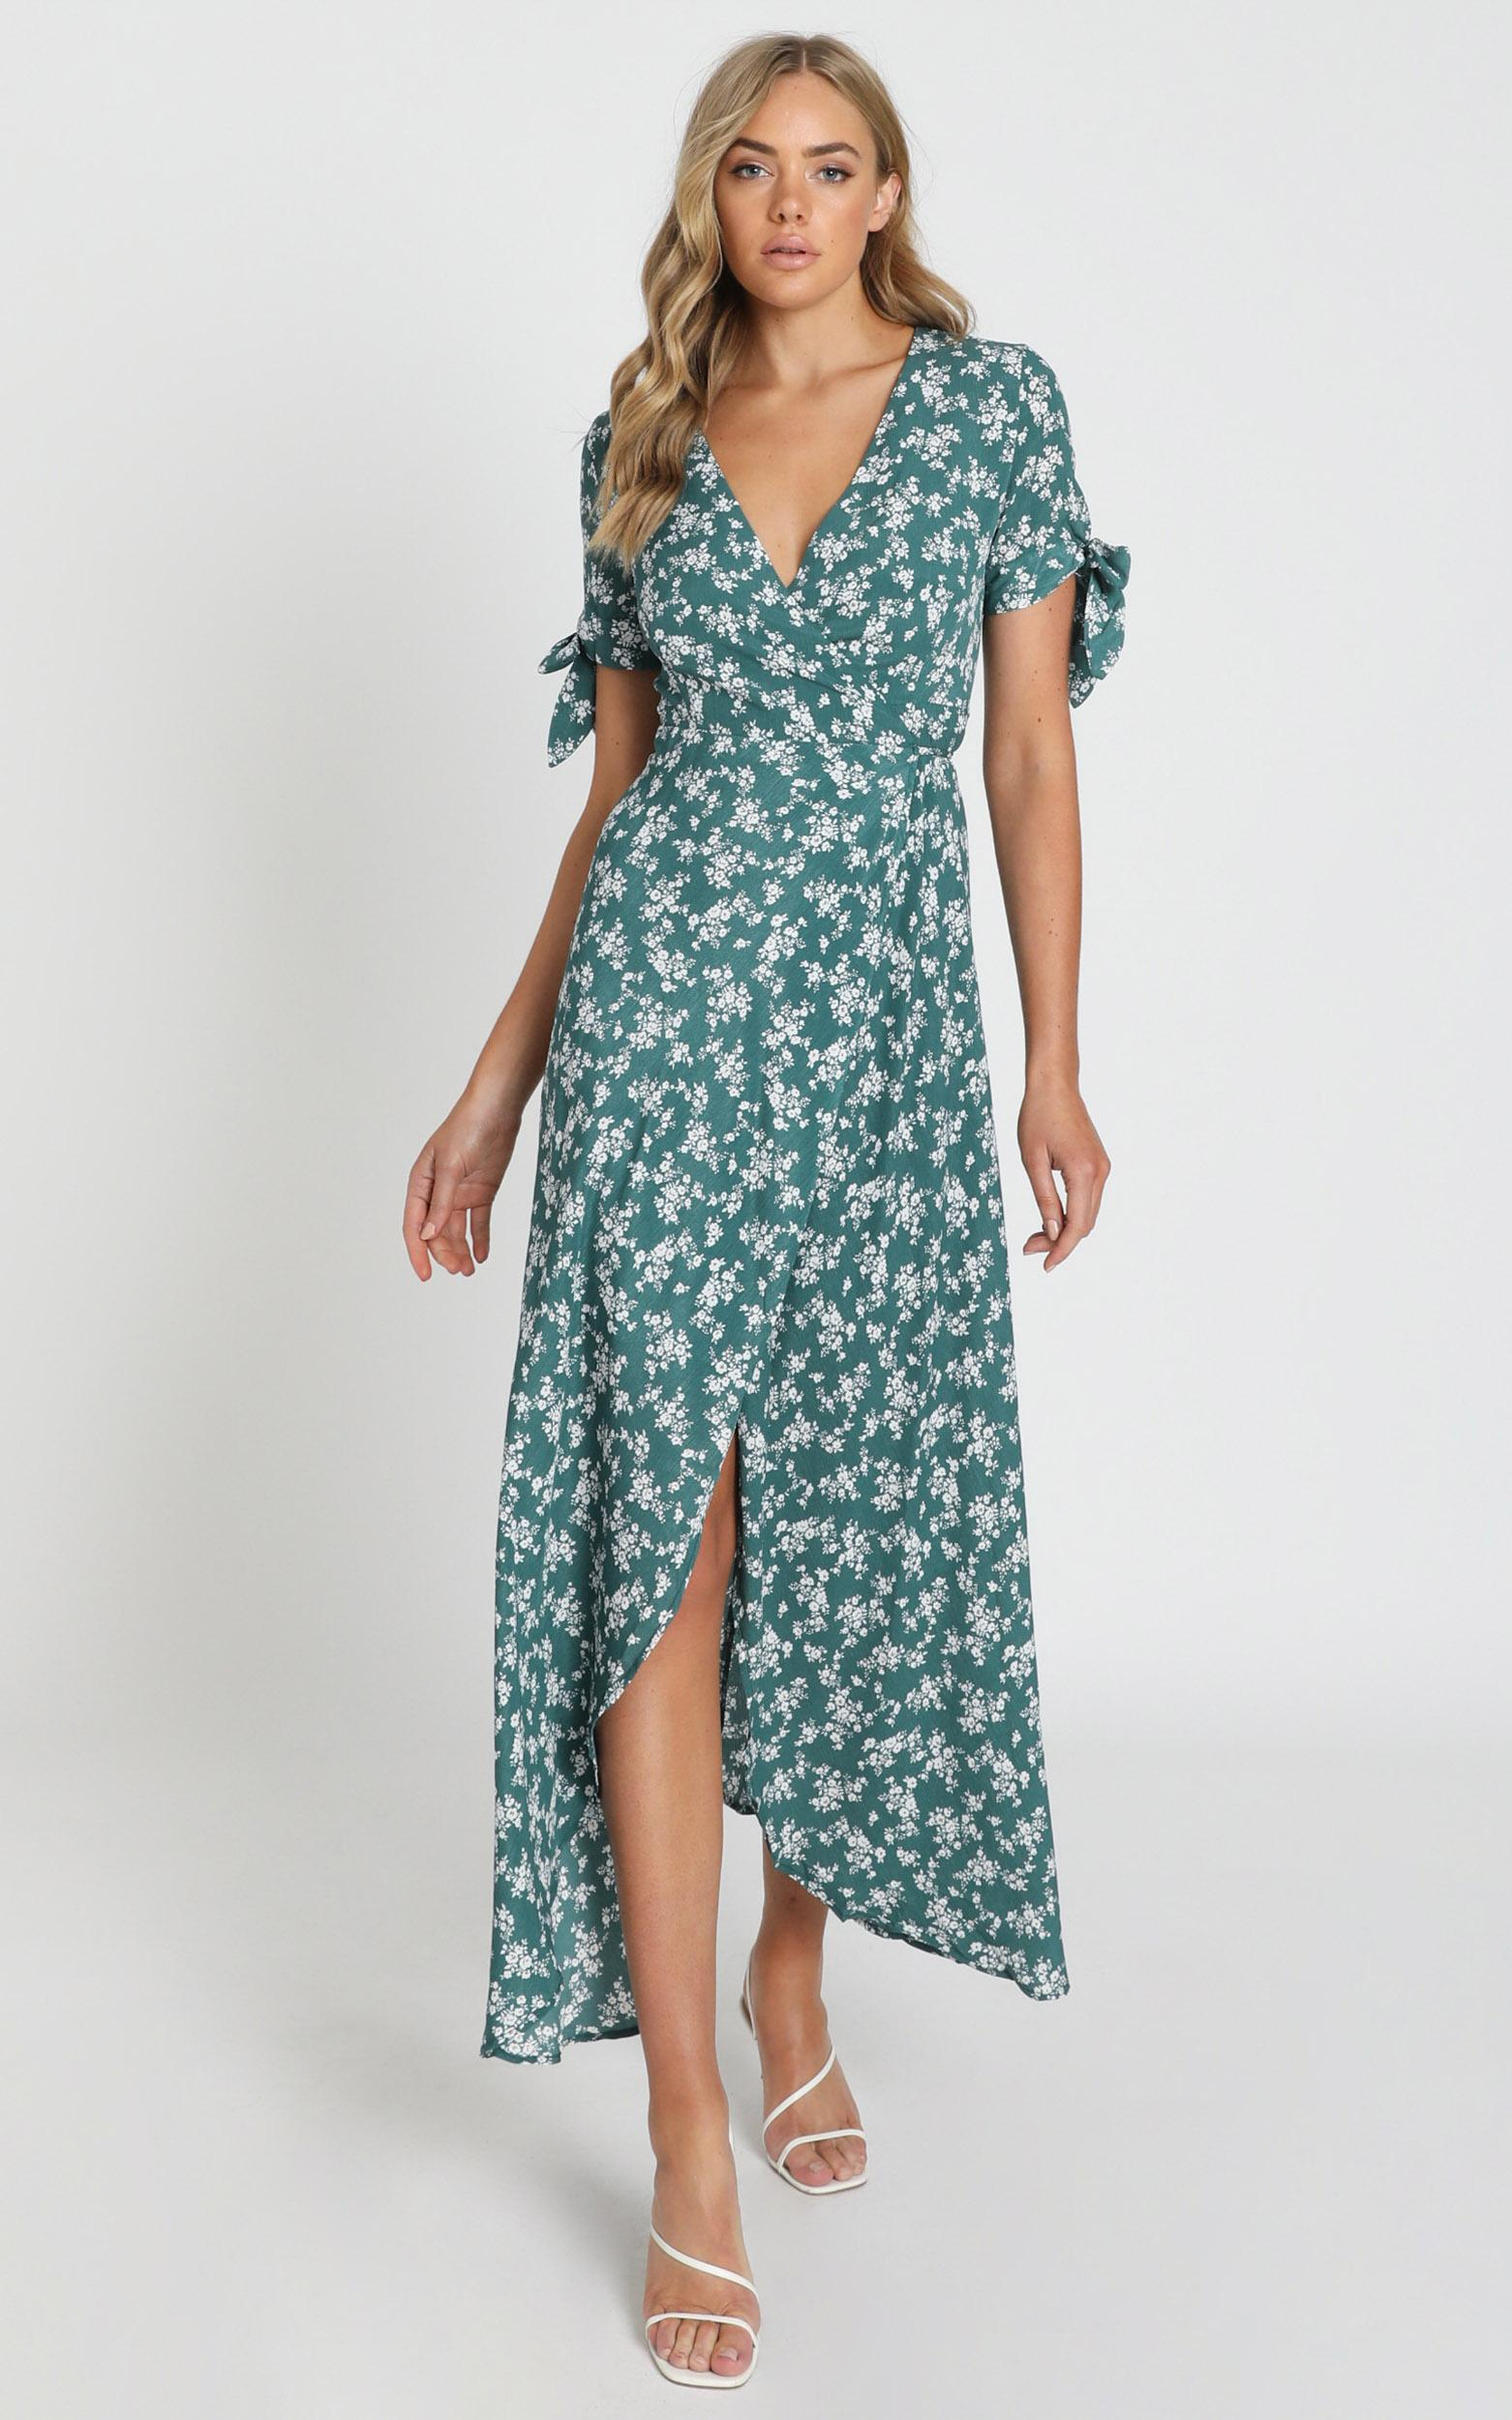 Picking it up Maxi Wrap dress in teal floral - 6 (XS), Green, hi-res image number null